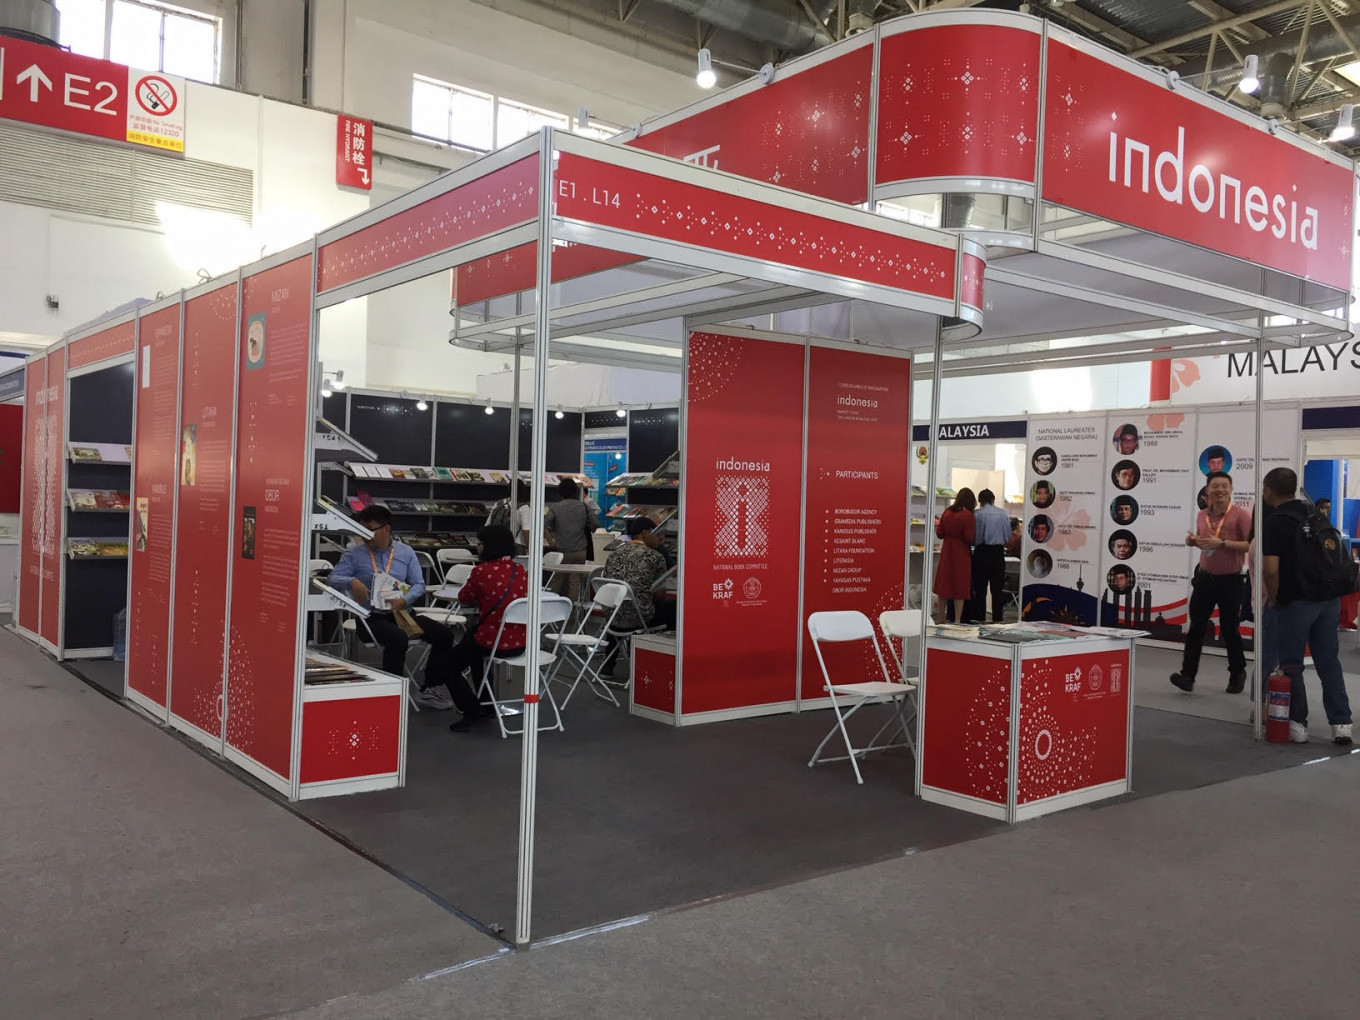 Indonesia takes part in 2019 Beijing International Book Fair